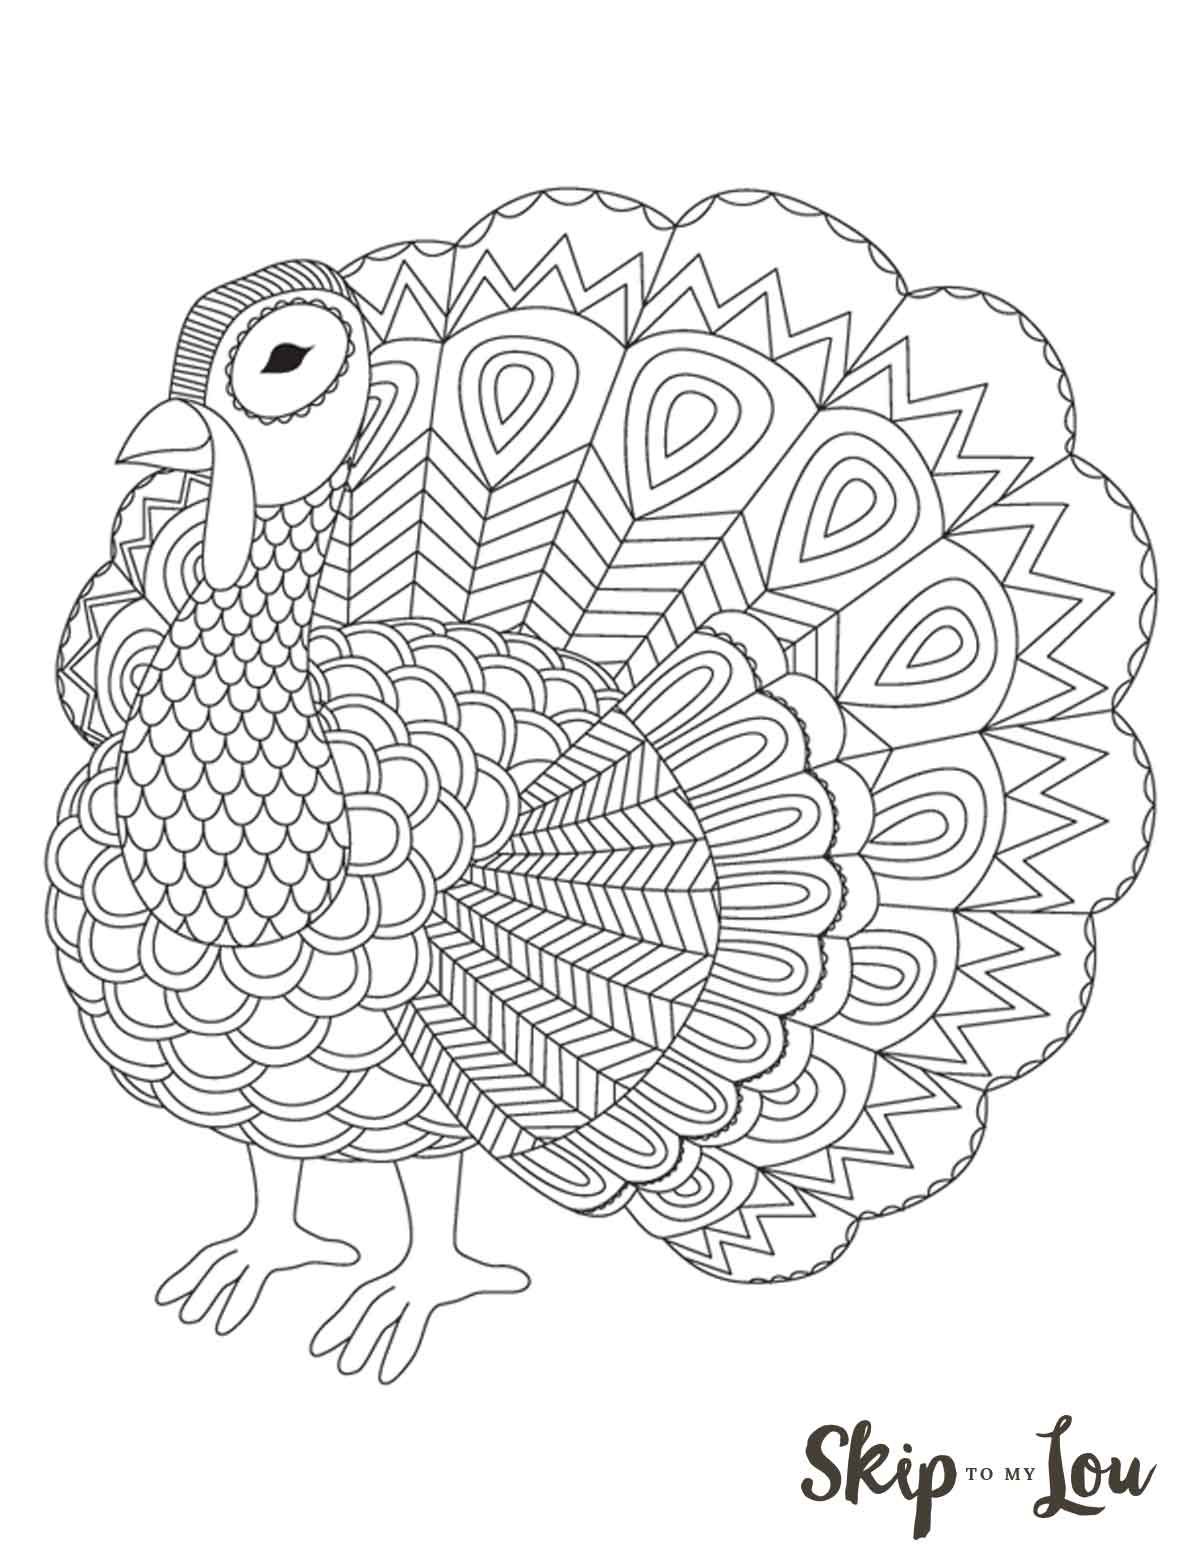 Turkey Coloring Pages Thanksgiving Coloring Sheets Turkey Coloring Pages Animal Coloring Pages